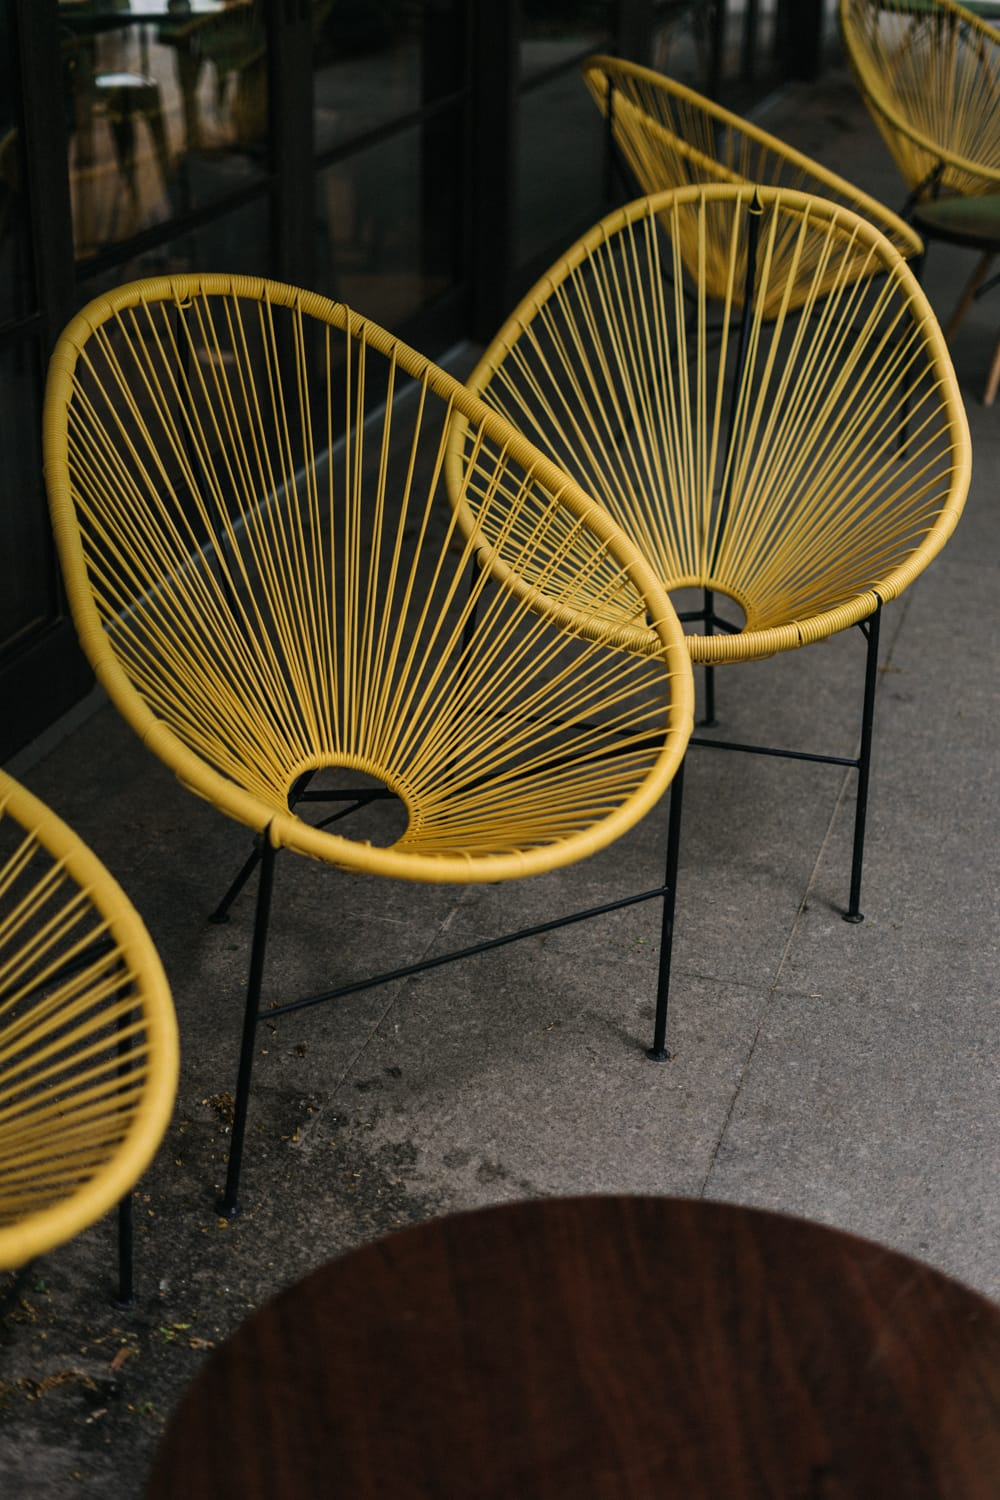 Yellow, big outdoor armchairs placed in a cafe garden. Warsaw